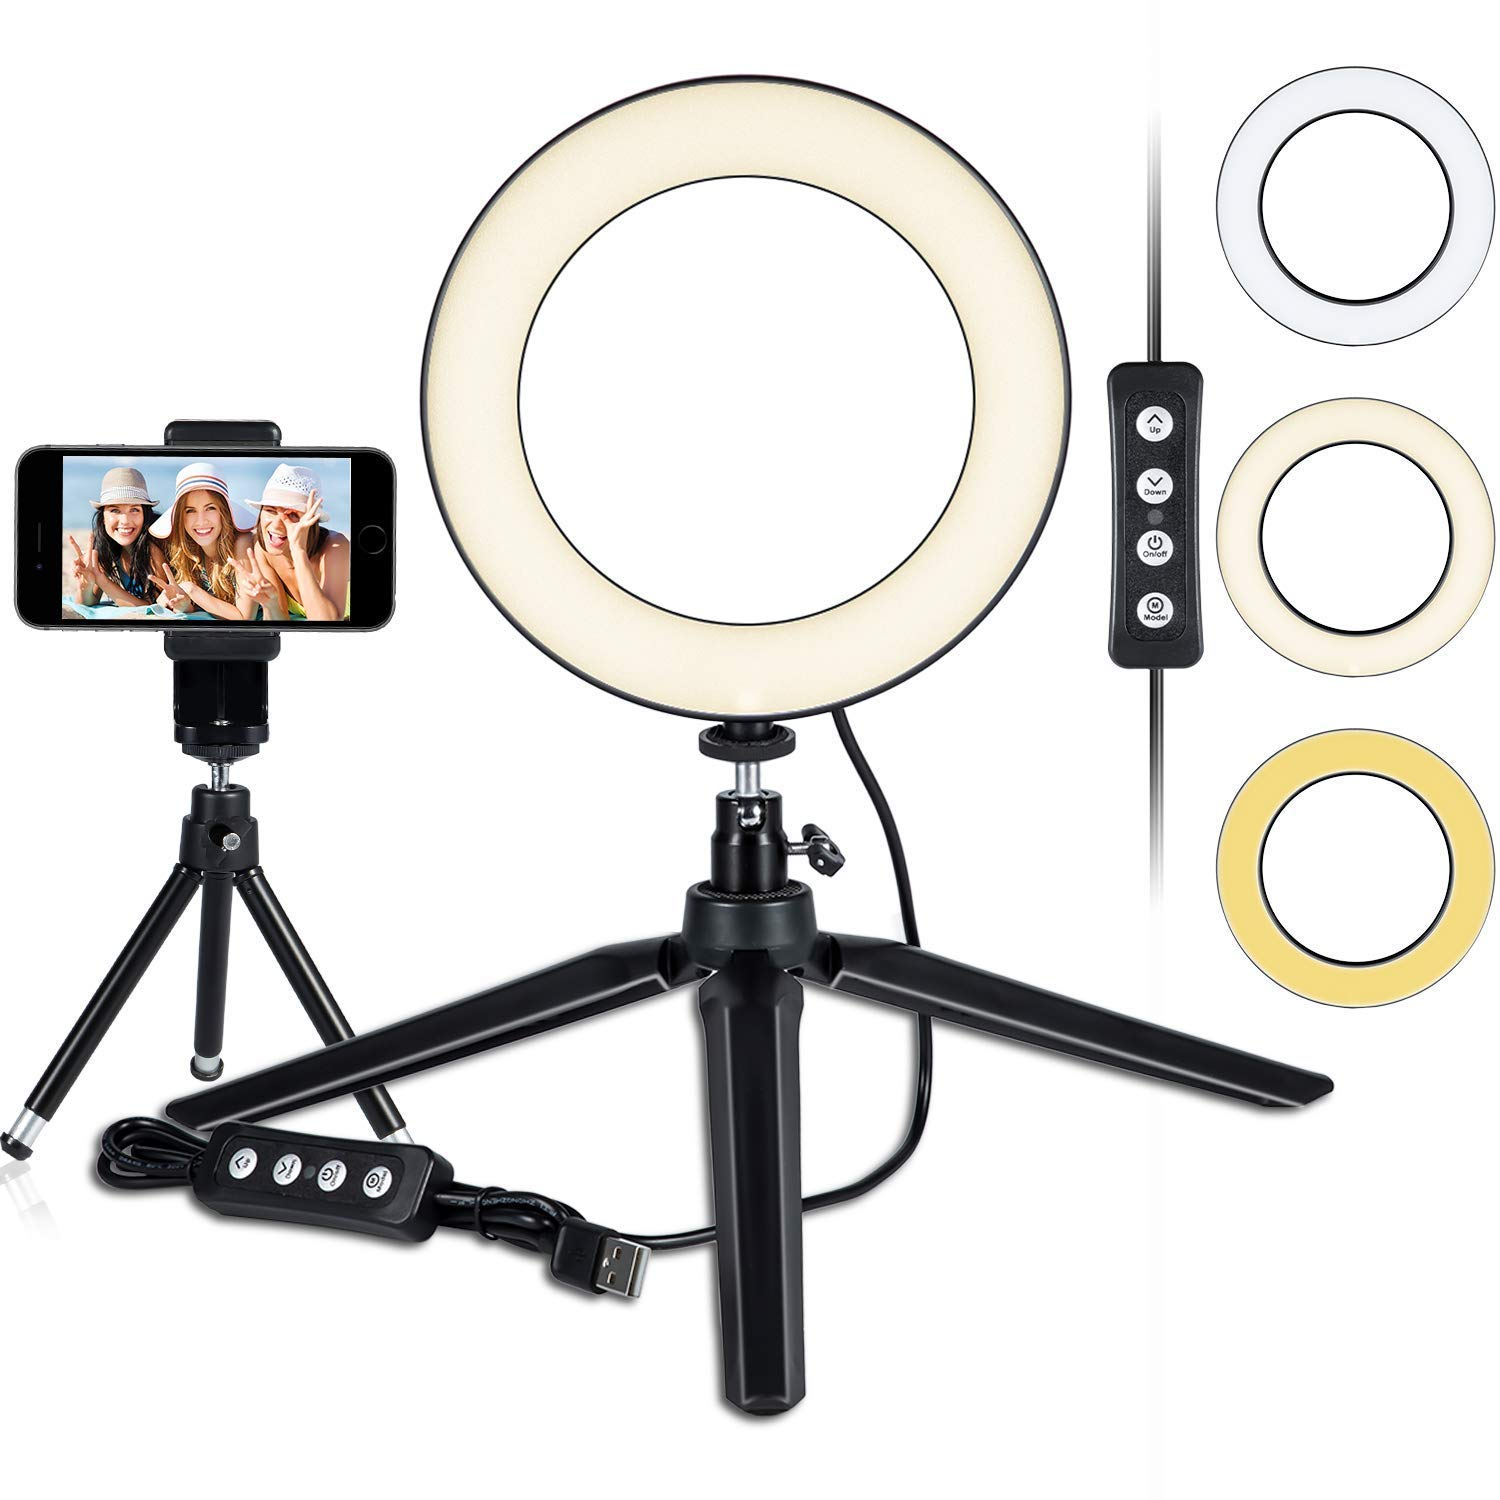 LED Ring Light 6'' with Tripod Stand for YouTube Video and Makeup, Mini LED Camera Light with Cell Phone Holder Desktop LED Lamp with 3 Light Modes & 11 Brightness Level (6'')